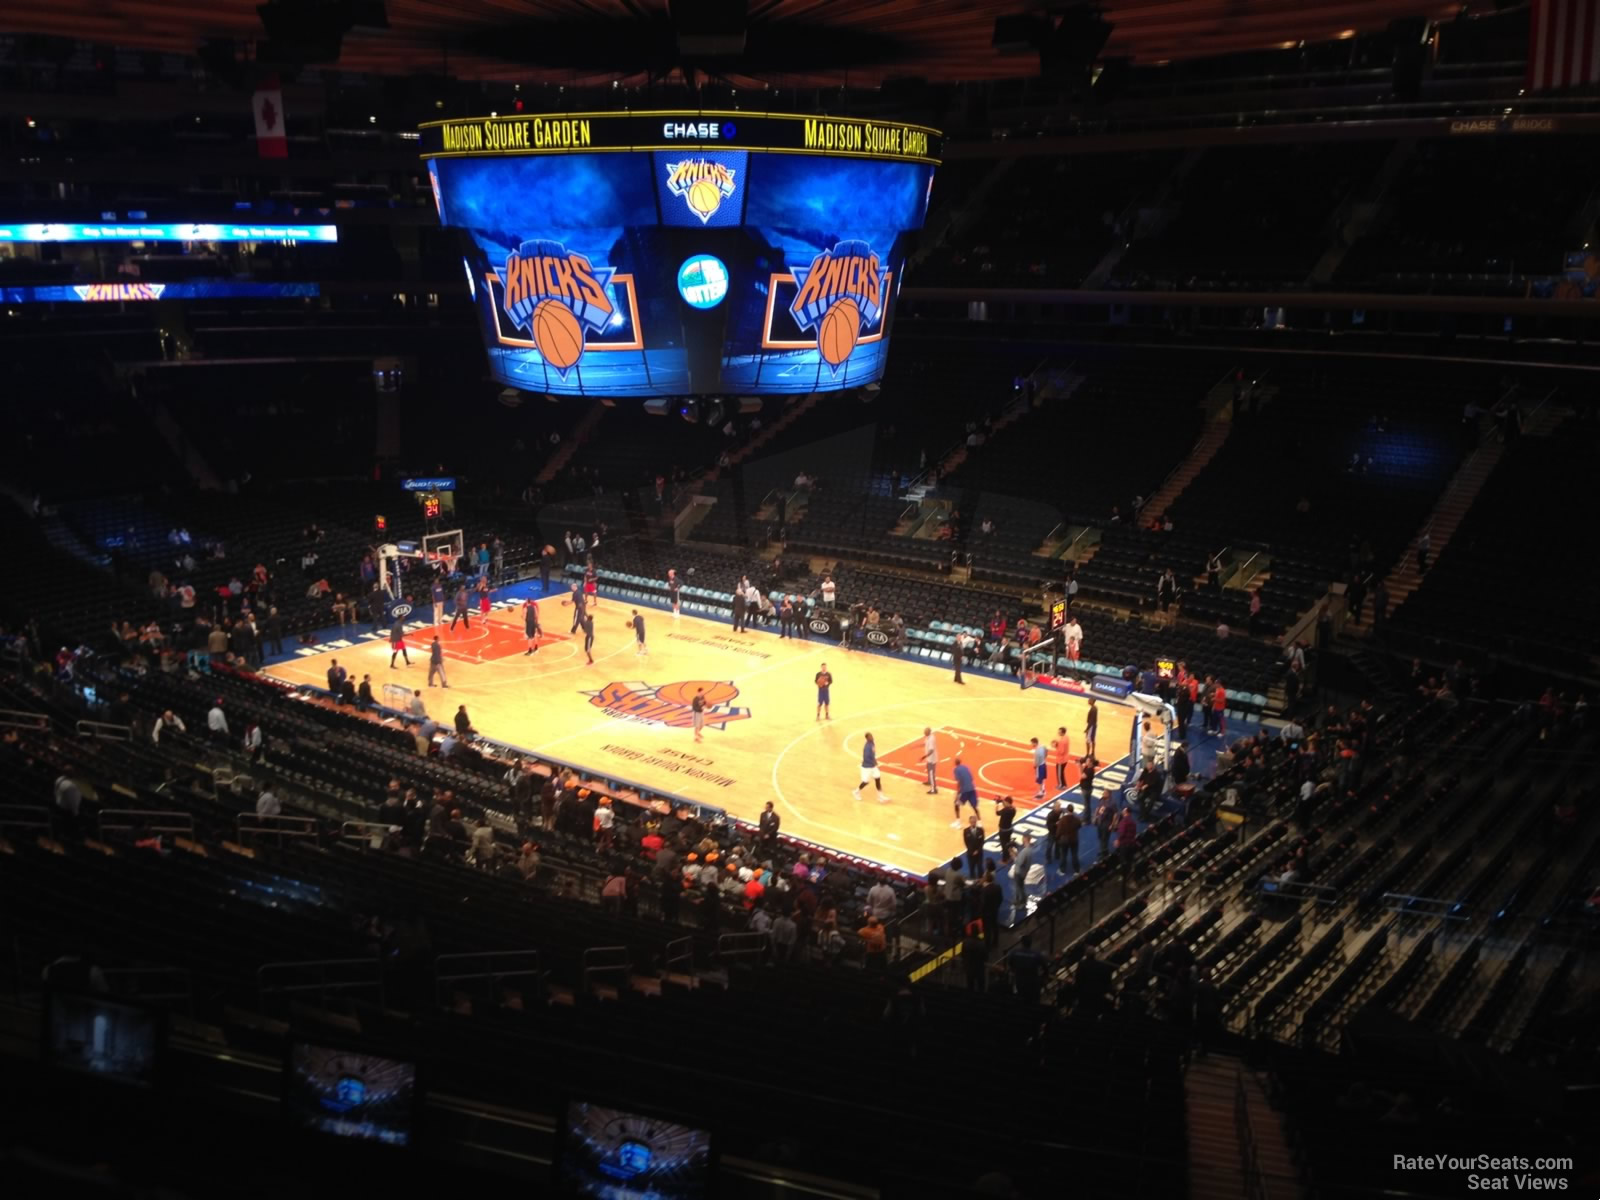 Madison square garden section 214 new york knicks Madison square garden basketball